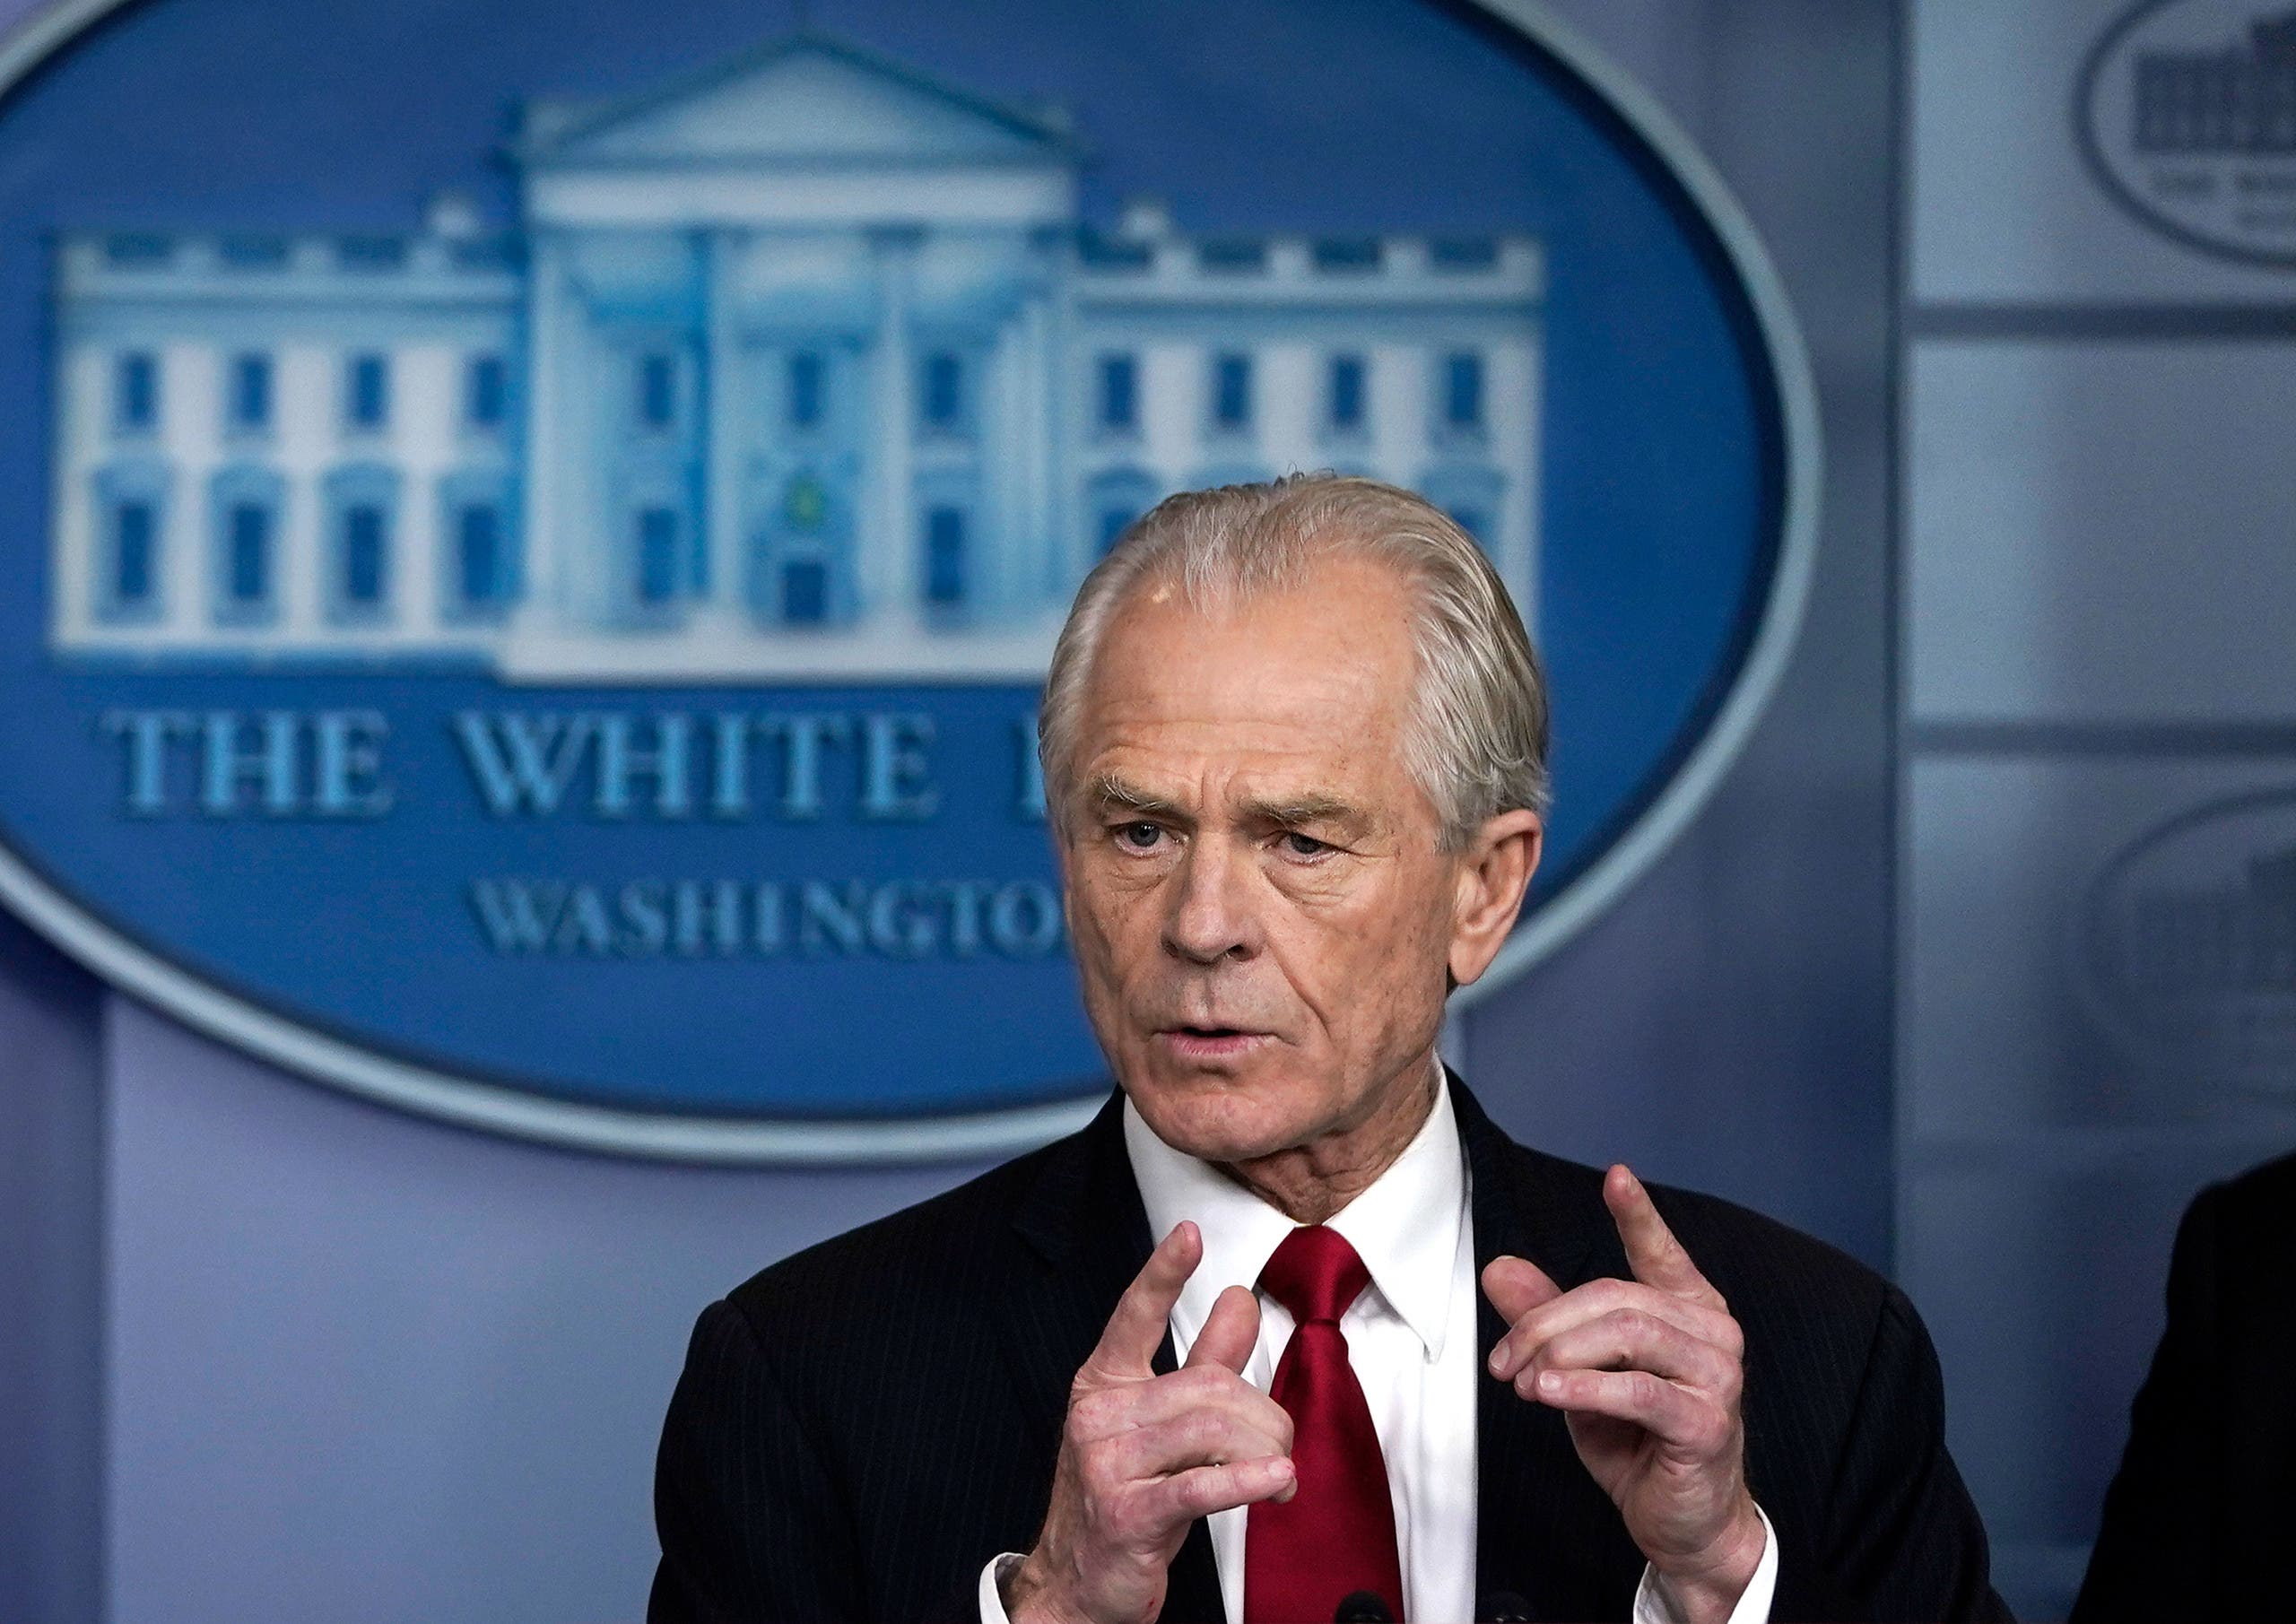 White House Trade and Manufacturing Policy Director Peter Navarro speaks during a briefing on the coronavirus pandemic in the press briefing room of the White House on March 27, 2020 in Washington, DC. (AFP)